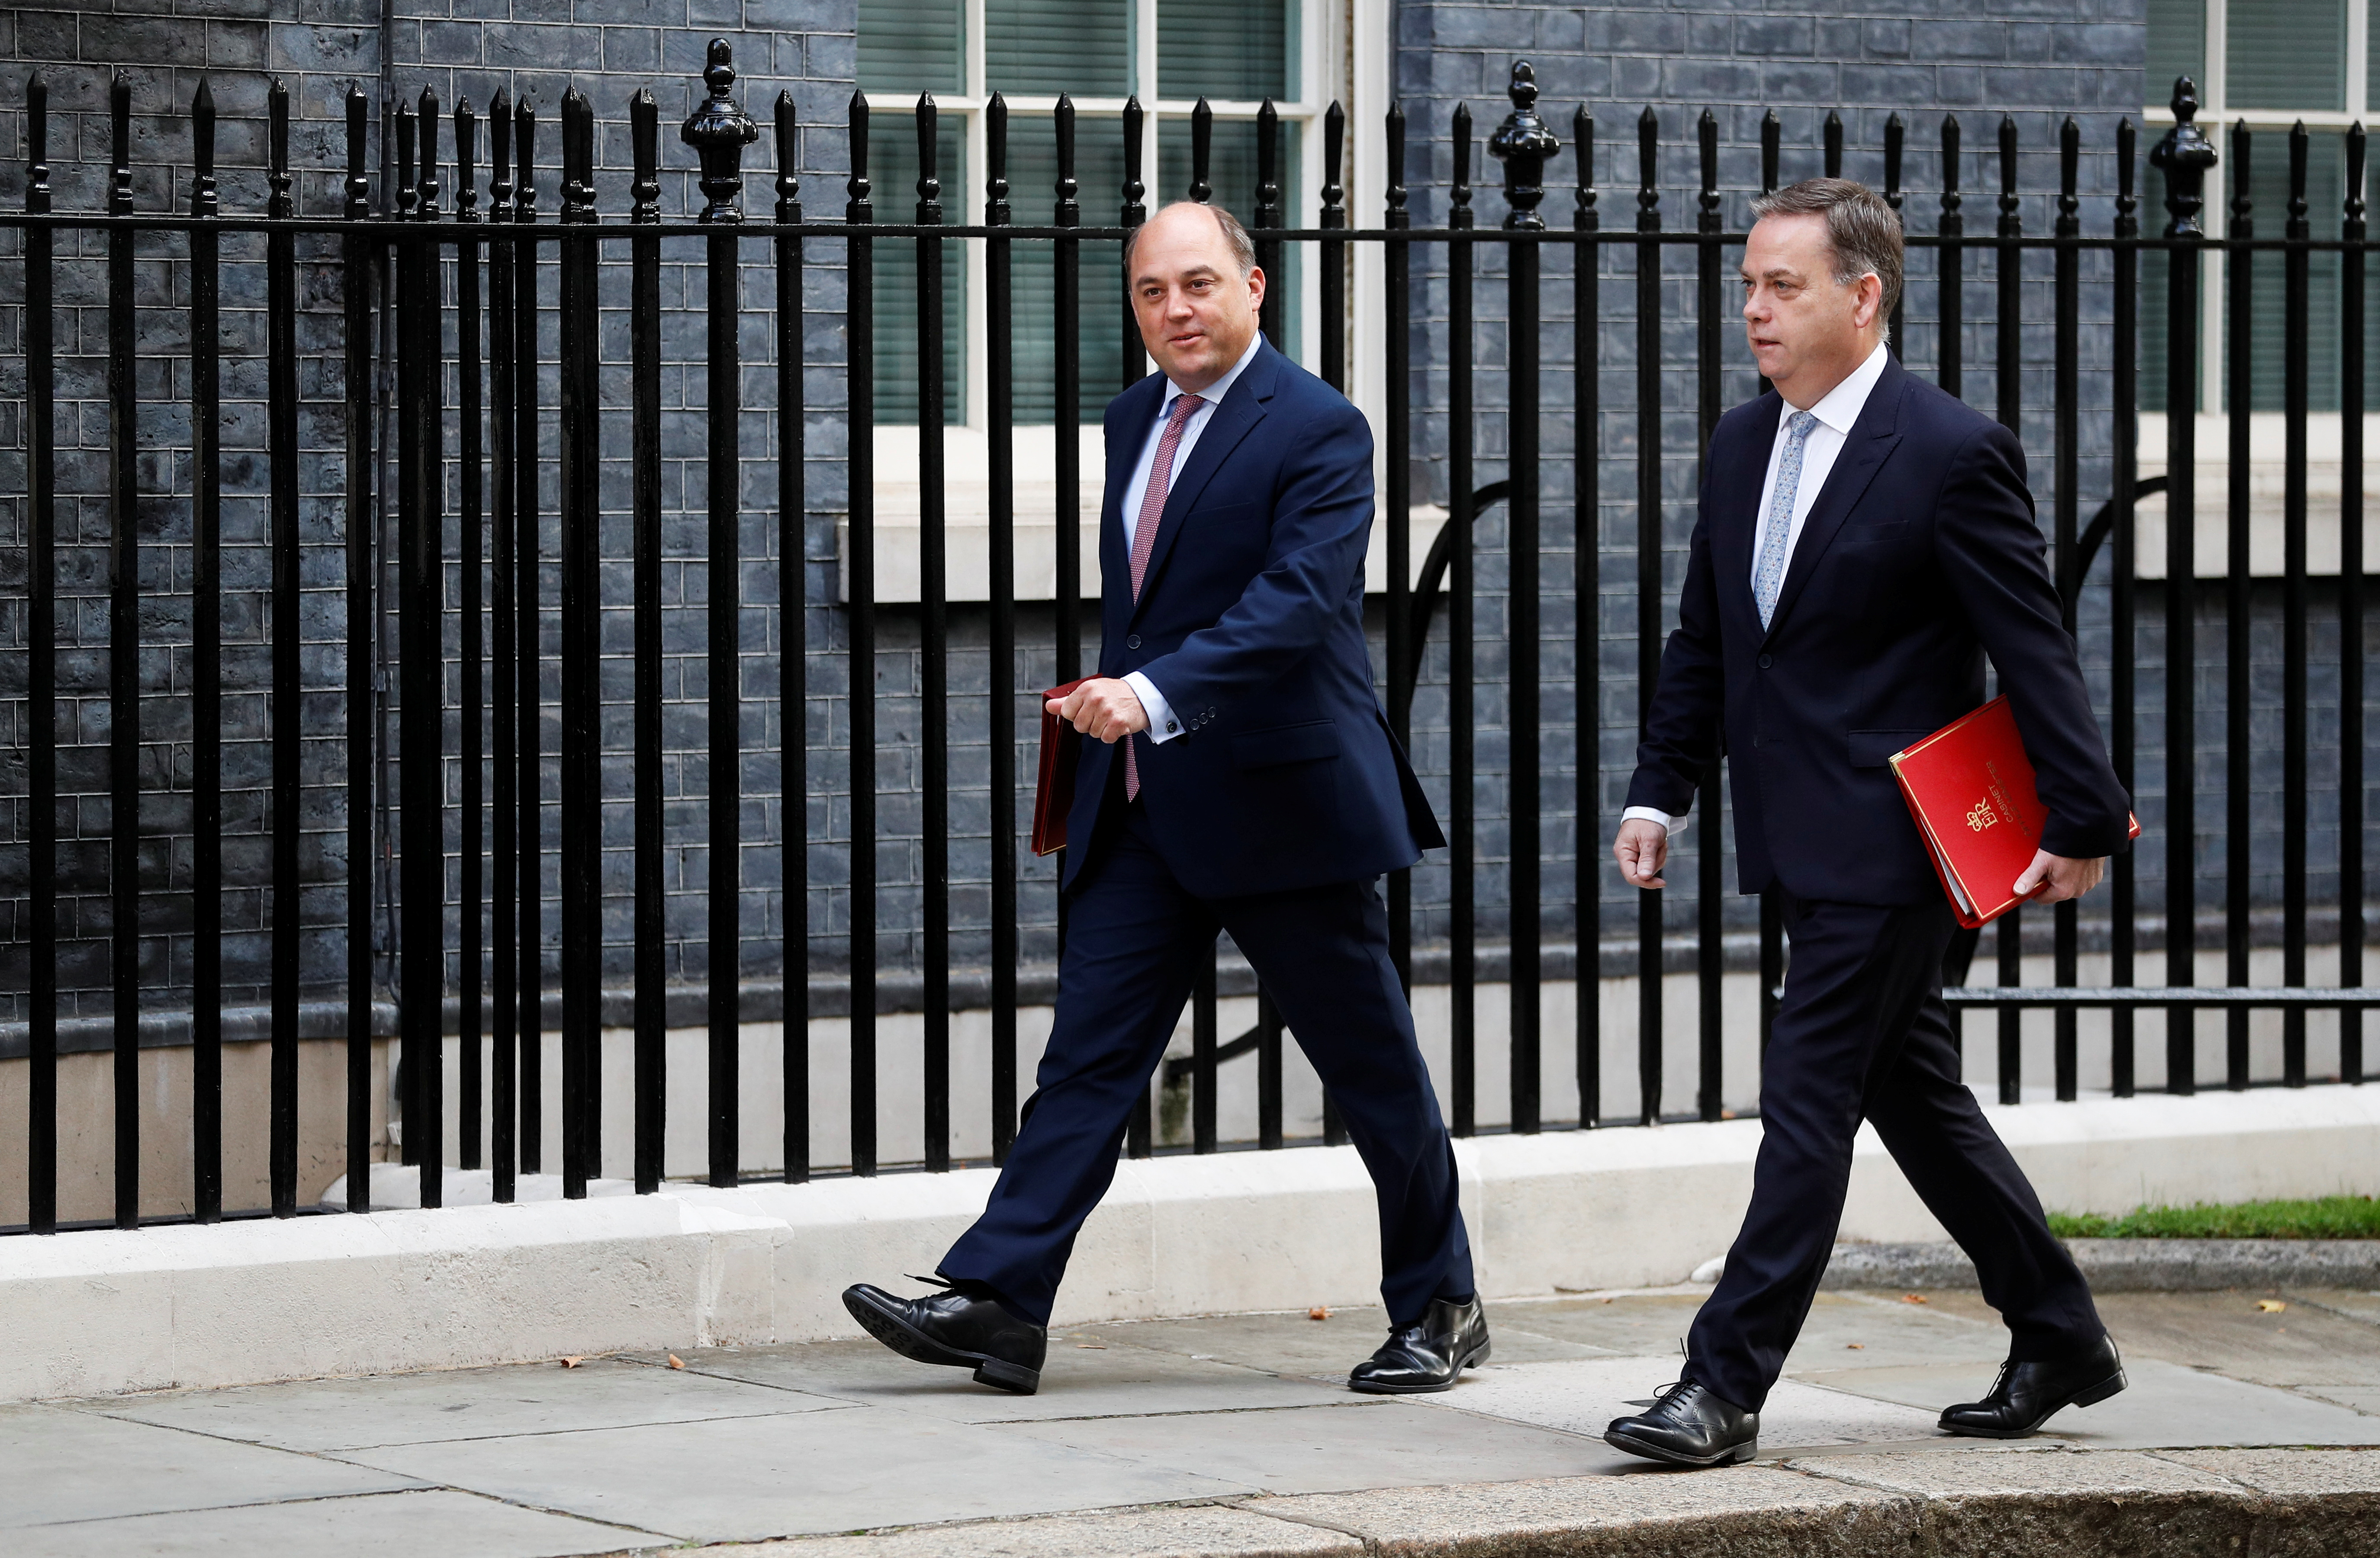 Britain's Minister of State Nigel Adams and Britain's Defence Secretary Ben Wallace arrive on Downing Street, in London, Britain September 17, 2021. REUTERS/Peter Nicholls